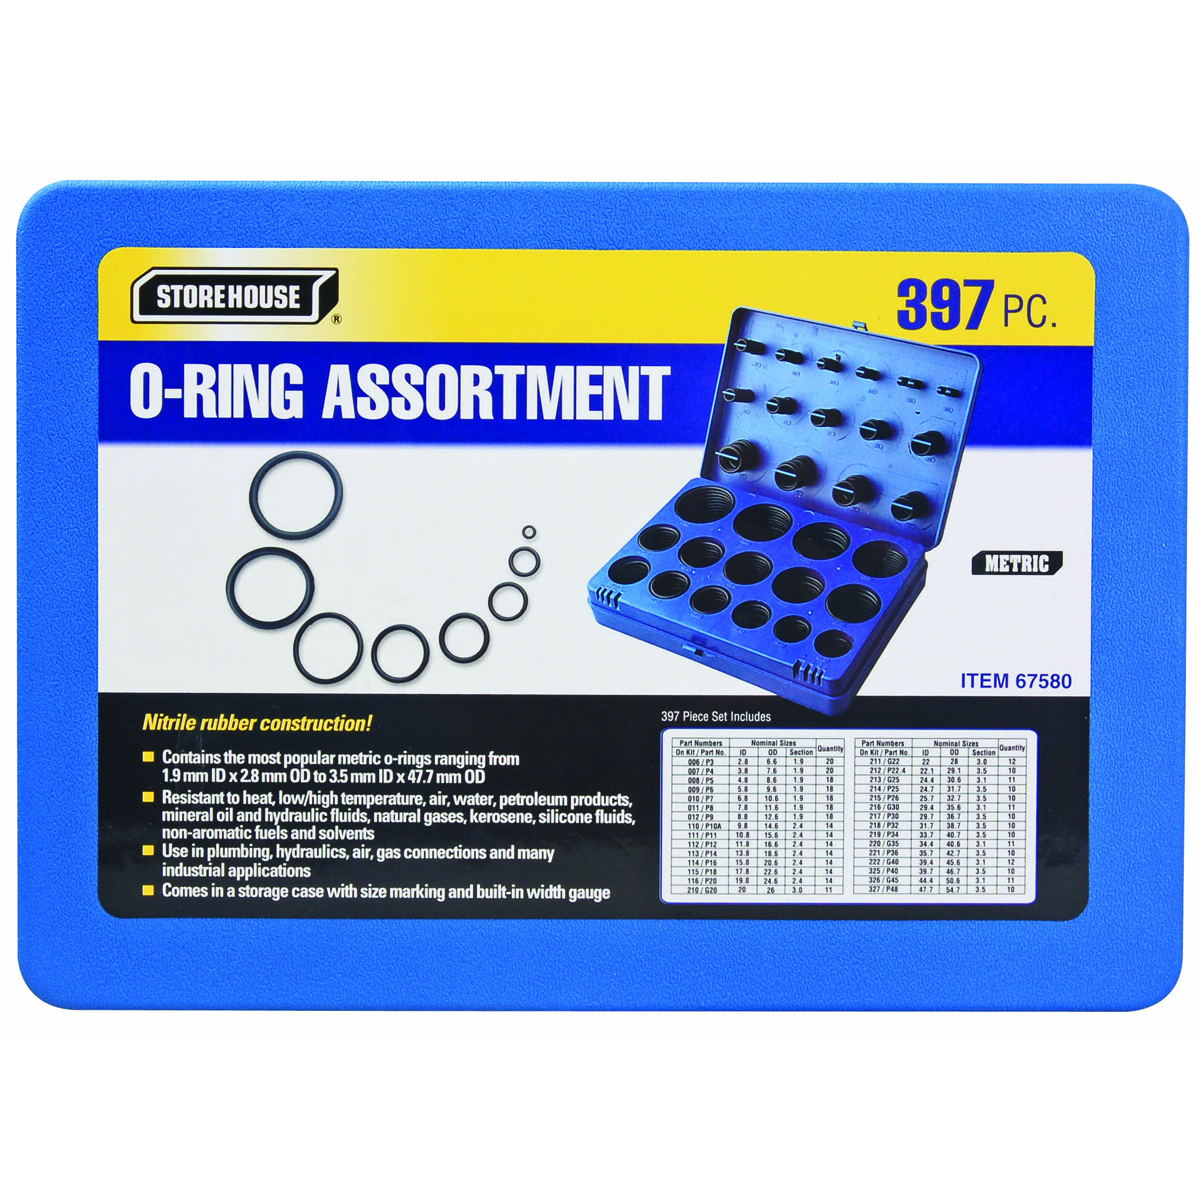 Oil Change Coupons >> O-Ring Assortment Pack - 397 Piece Metric O-Ring Assortment